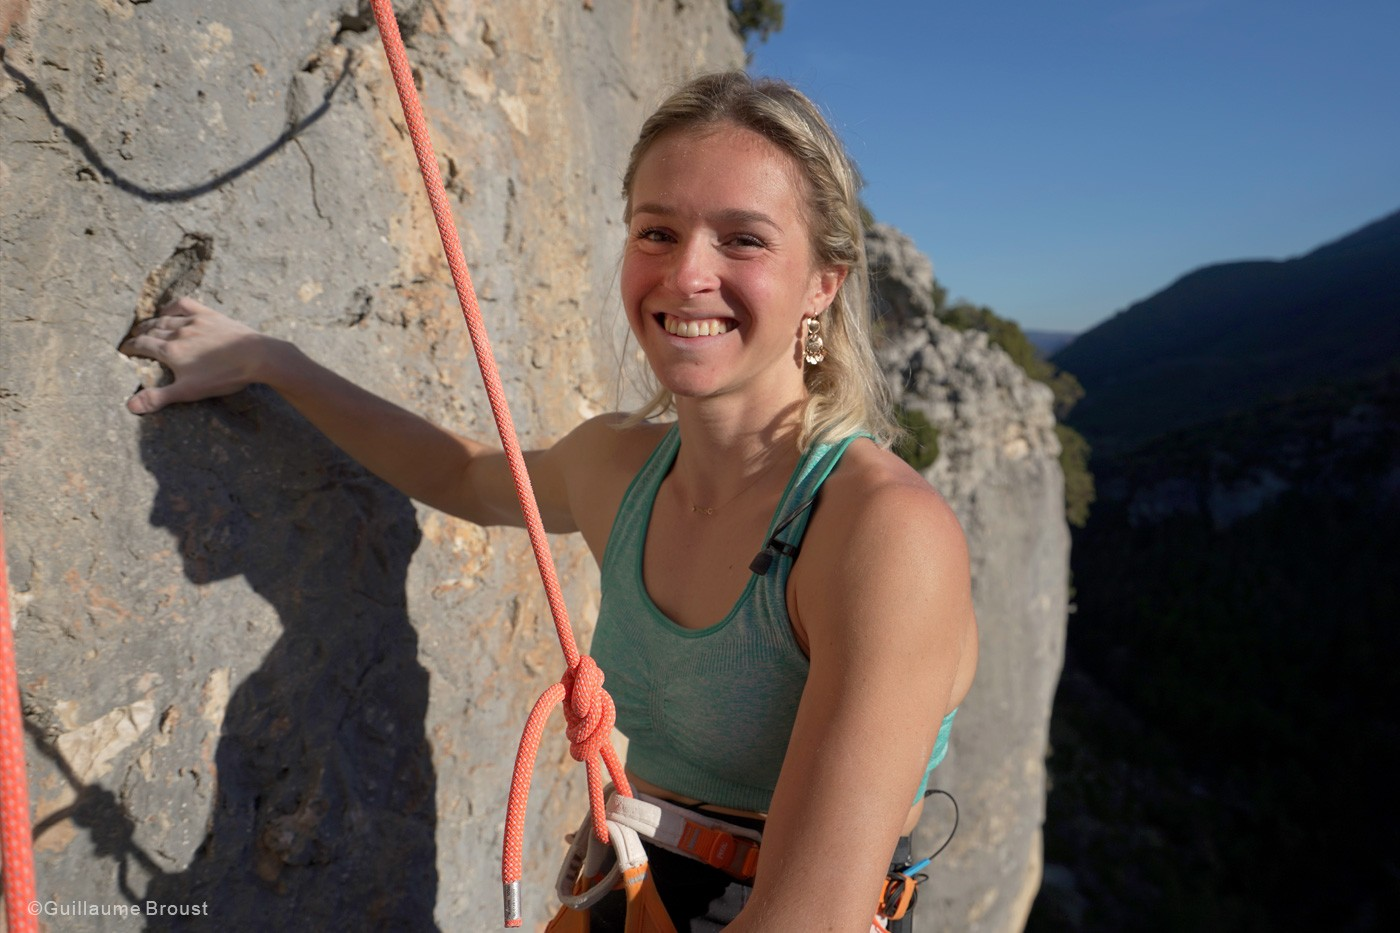 Julia Chanourdie after the climb of Eagle-4 ©Guillaume-Broust